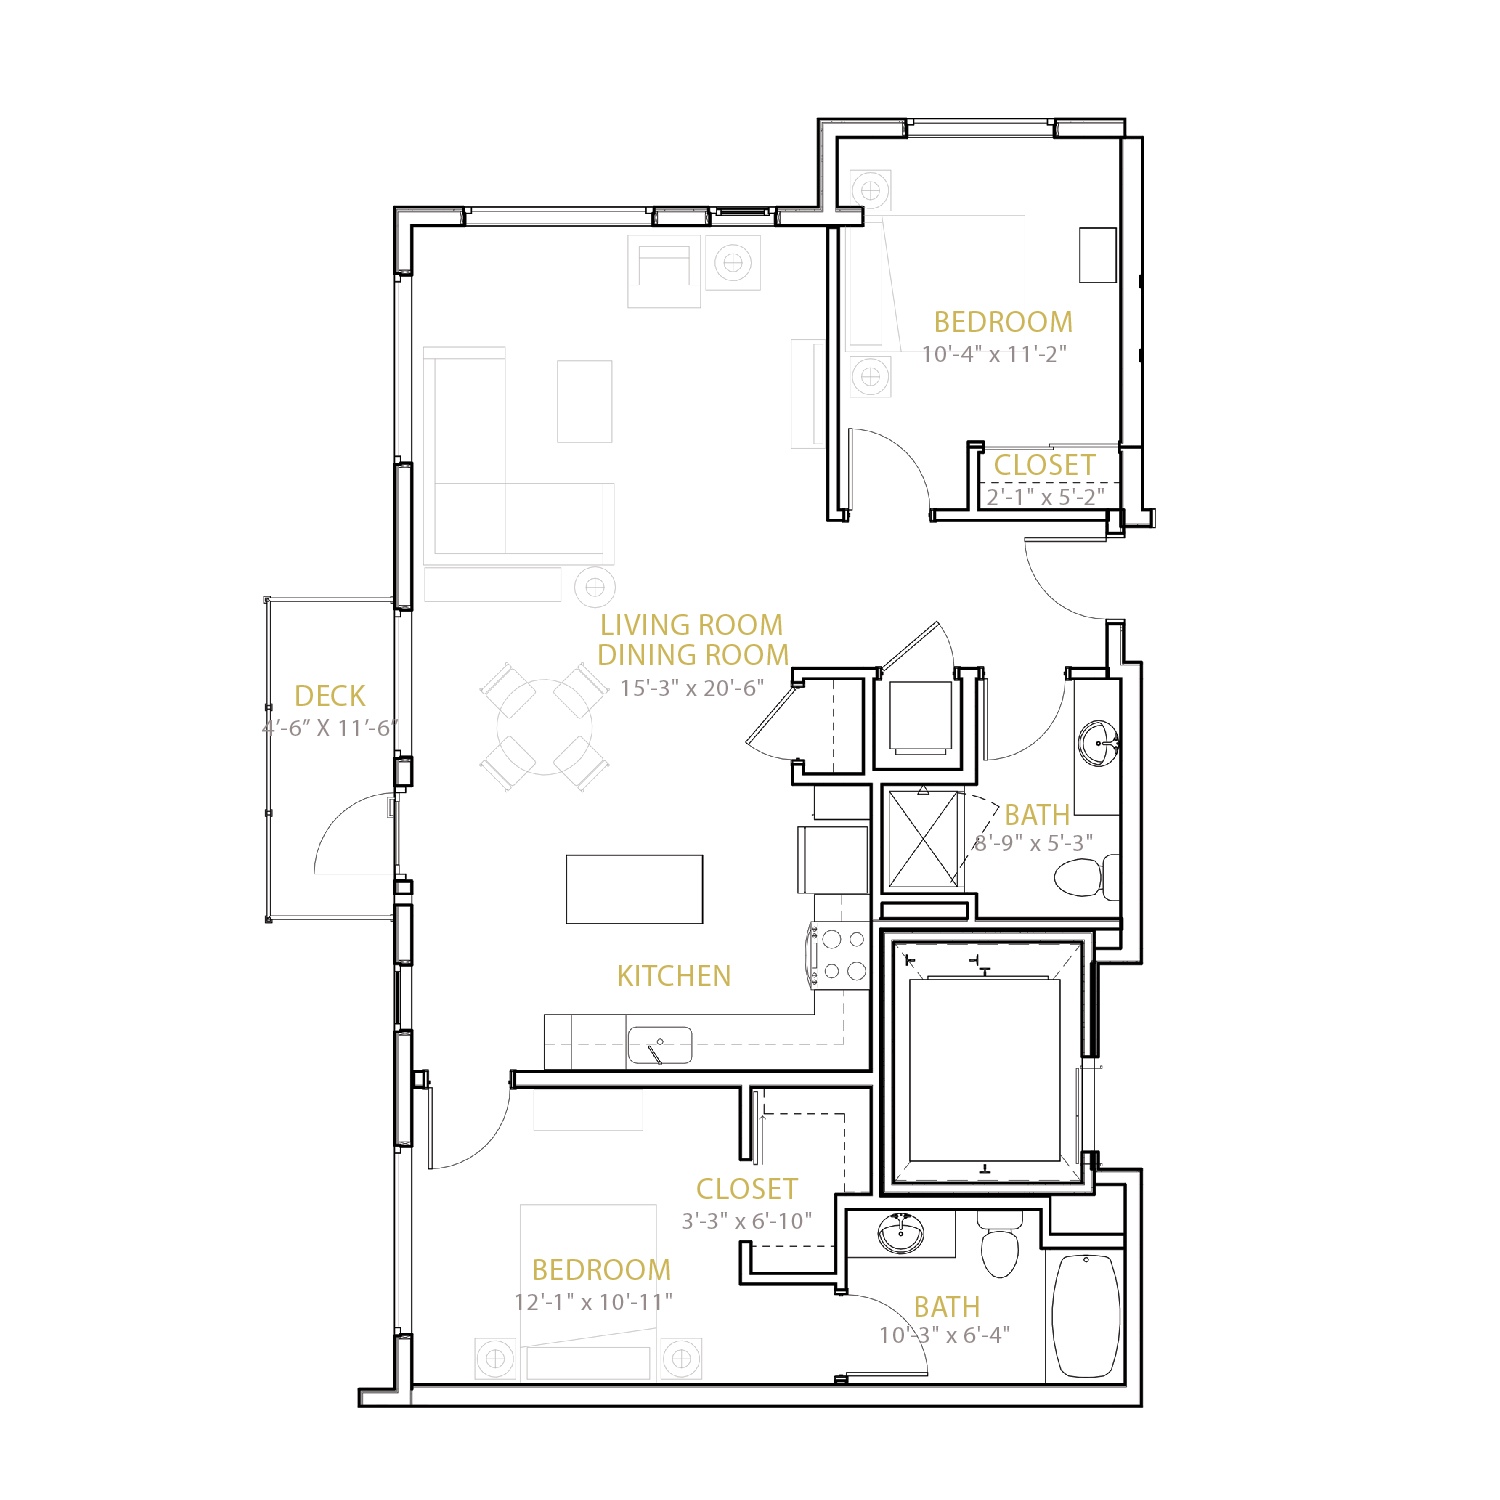 C Four floor plan diagram. Two bedrooms, two bathrooms, an open kitchen and living area, and a deck.